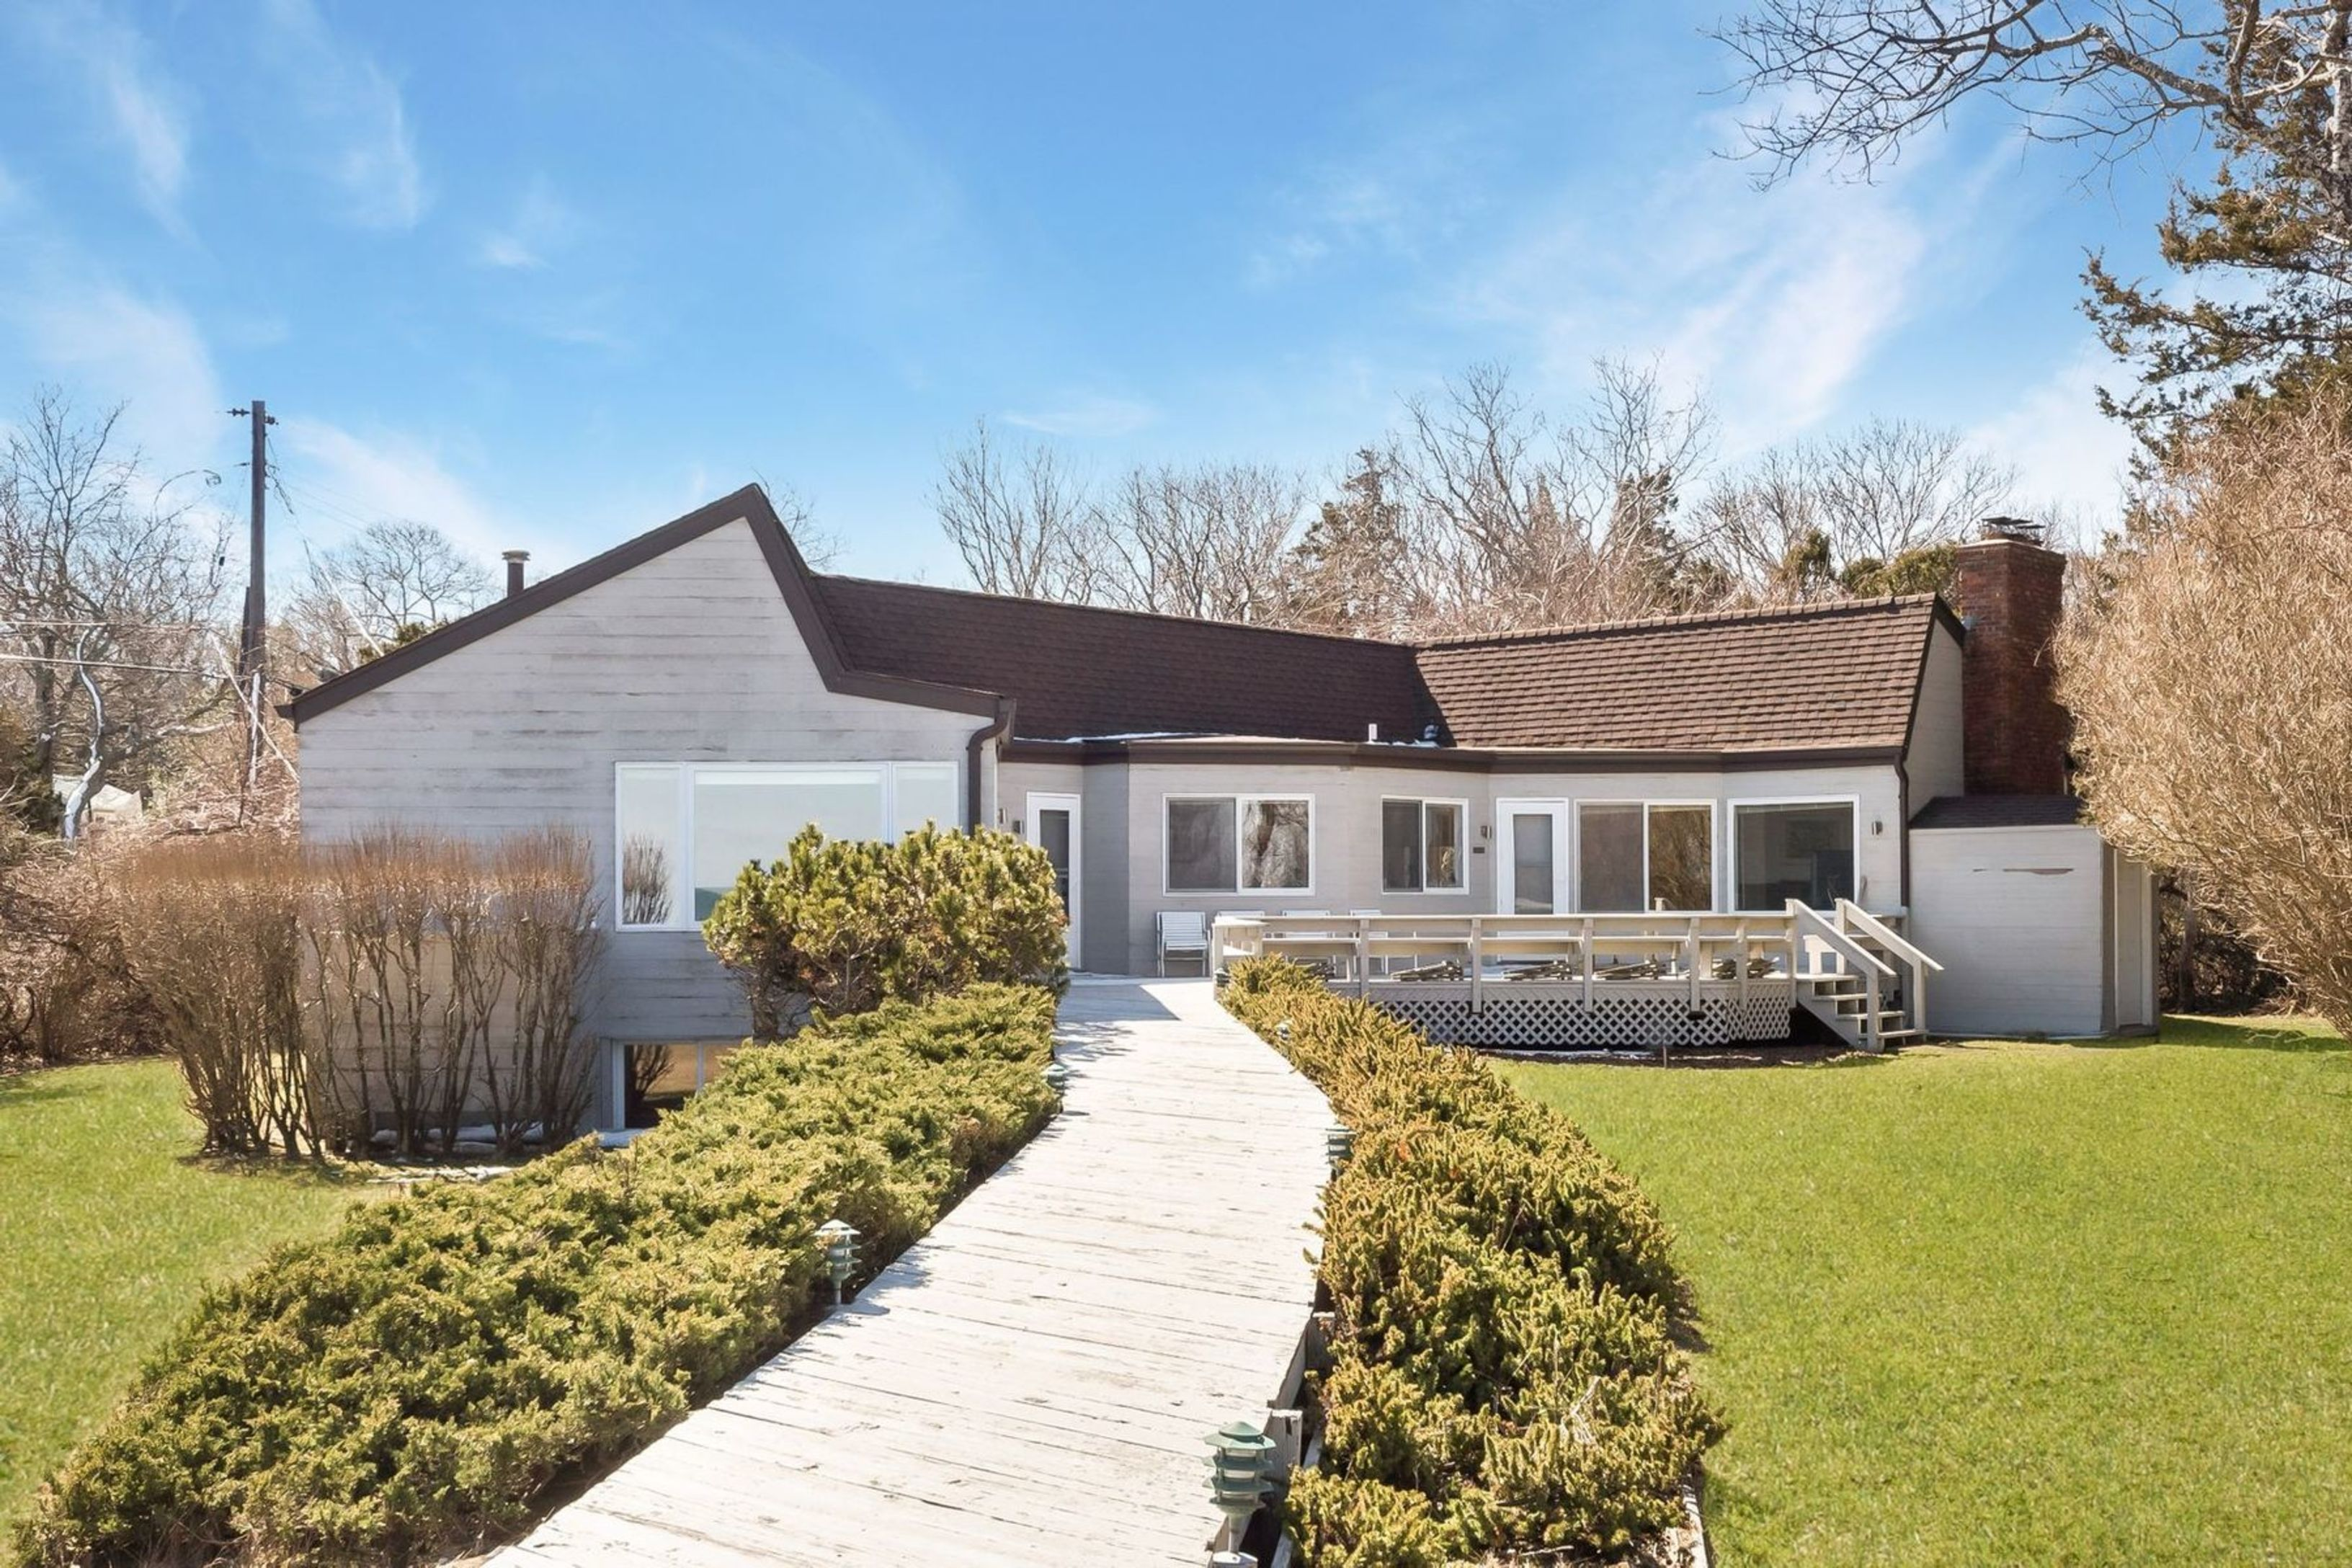 53 Milina Dr - East Hampton NW, New York